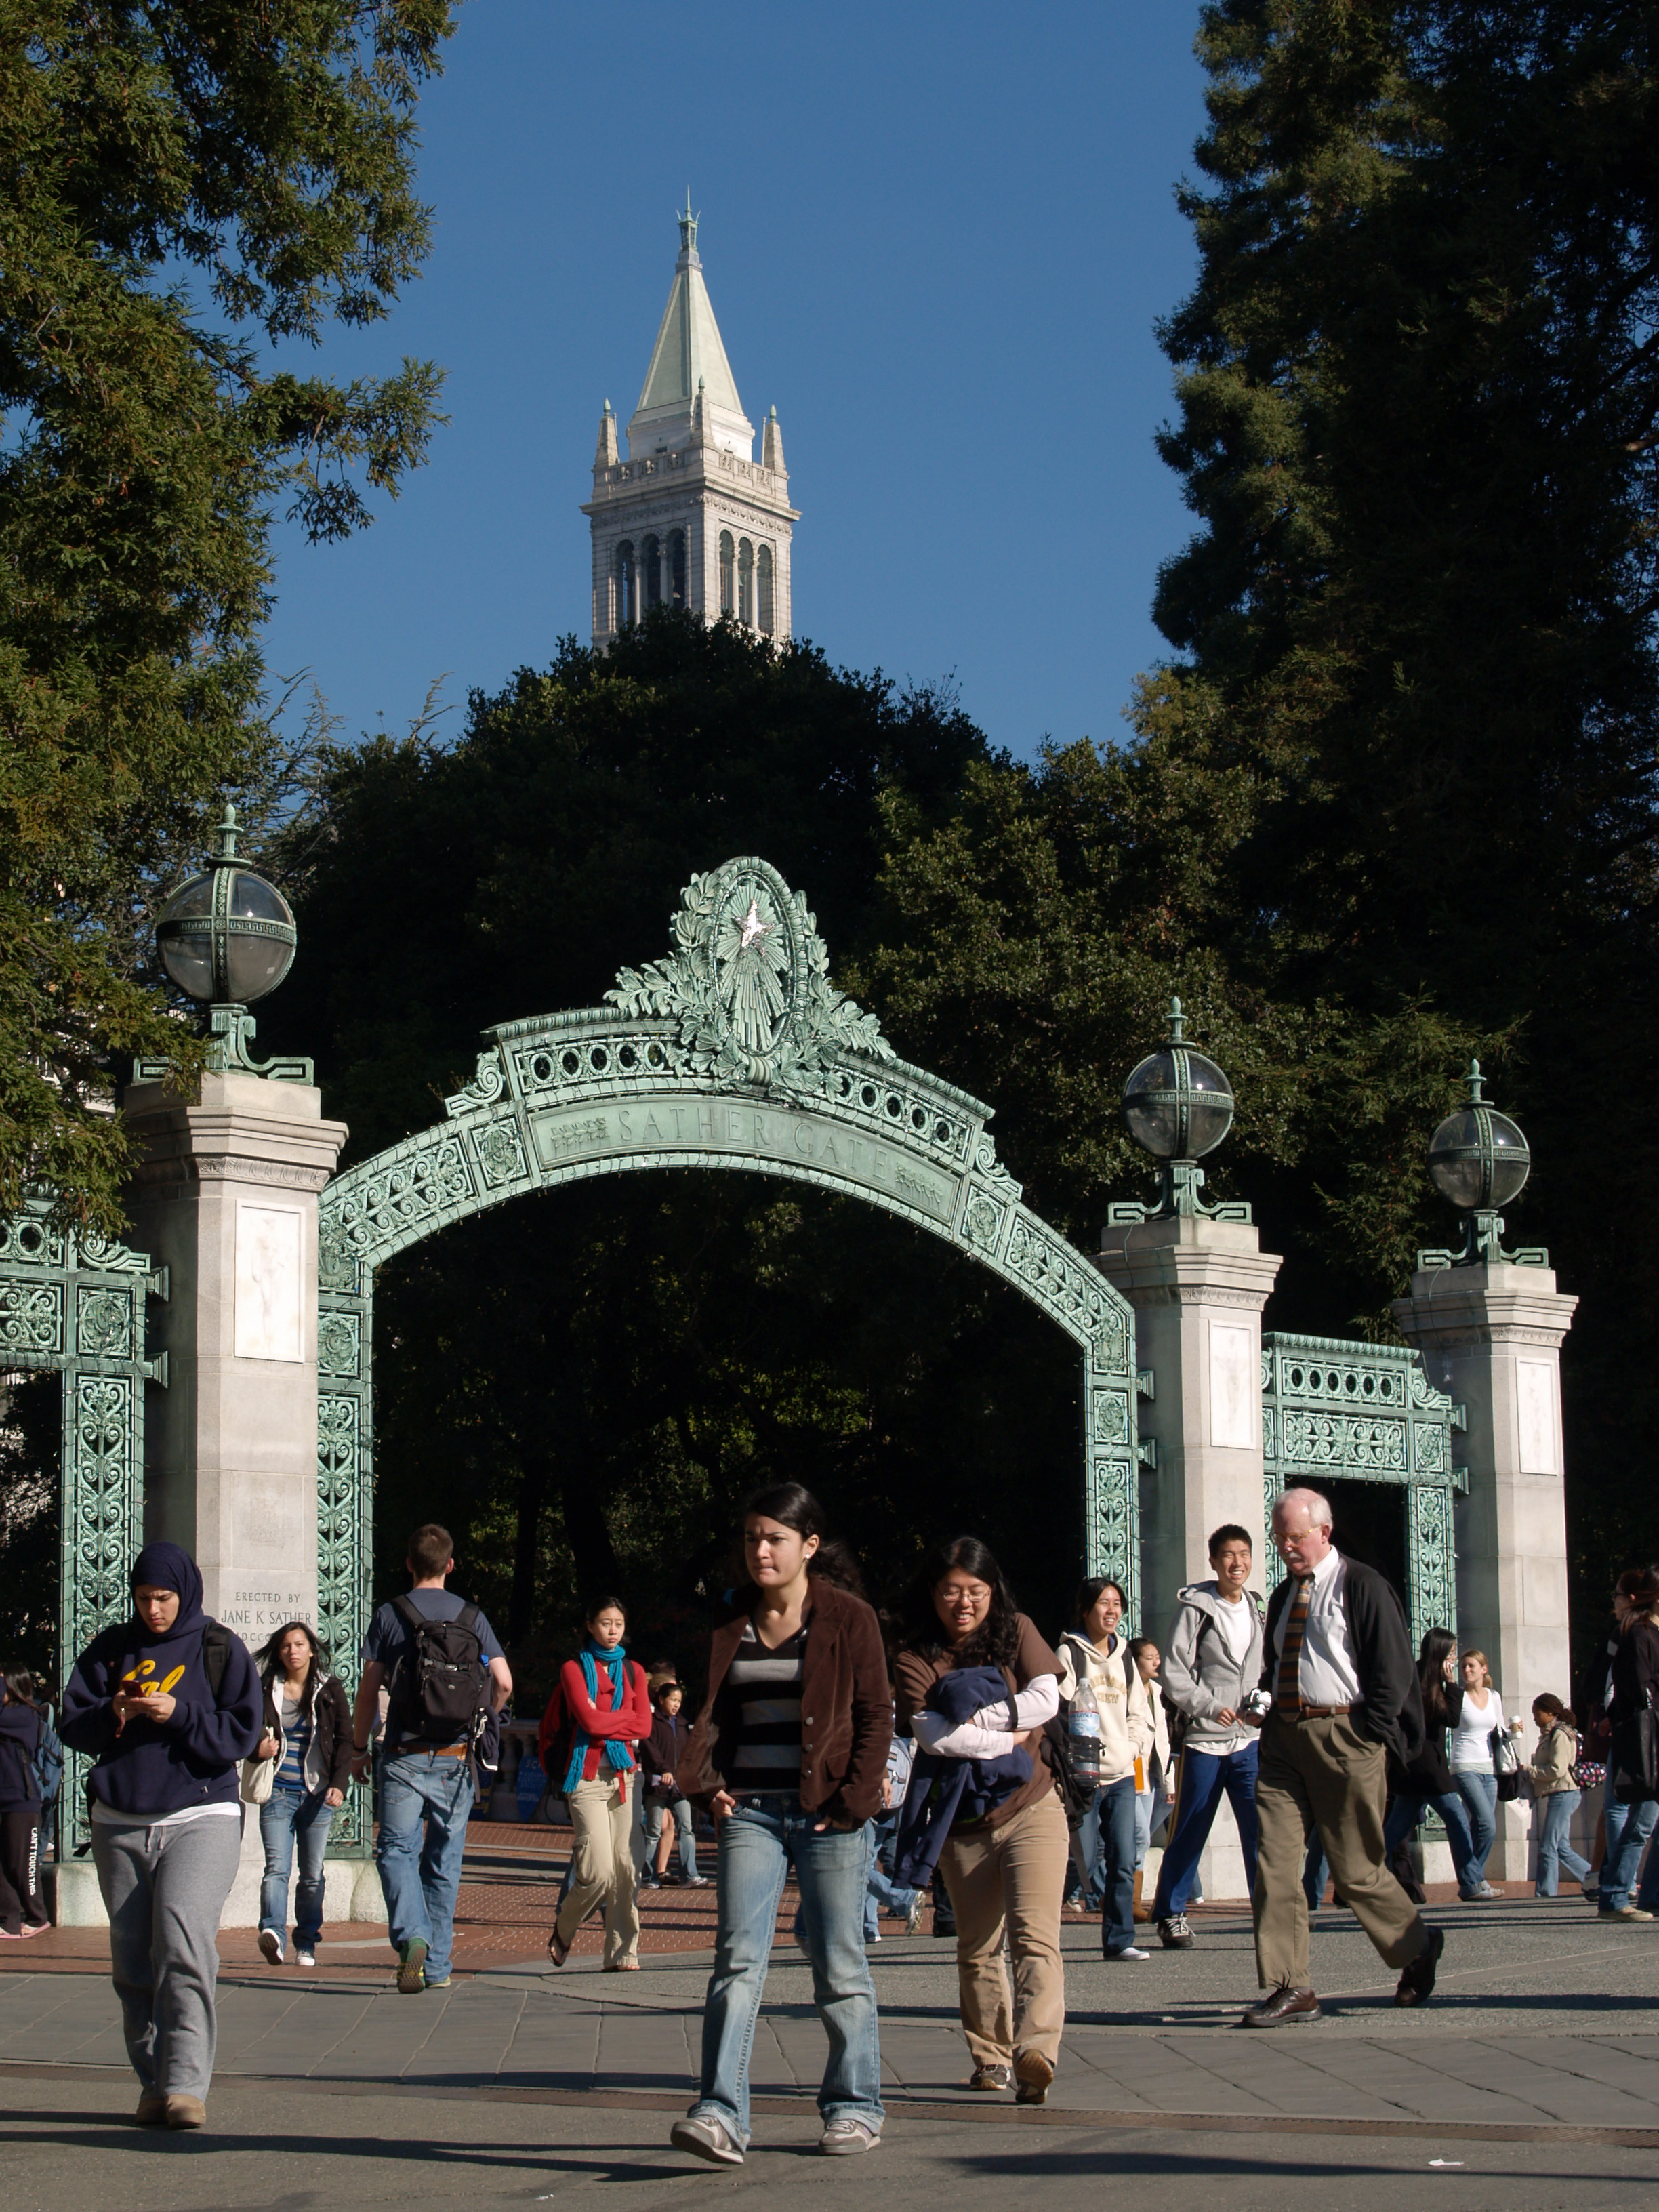 Could I get into UC Berkeley?